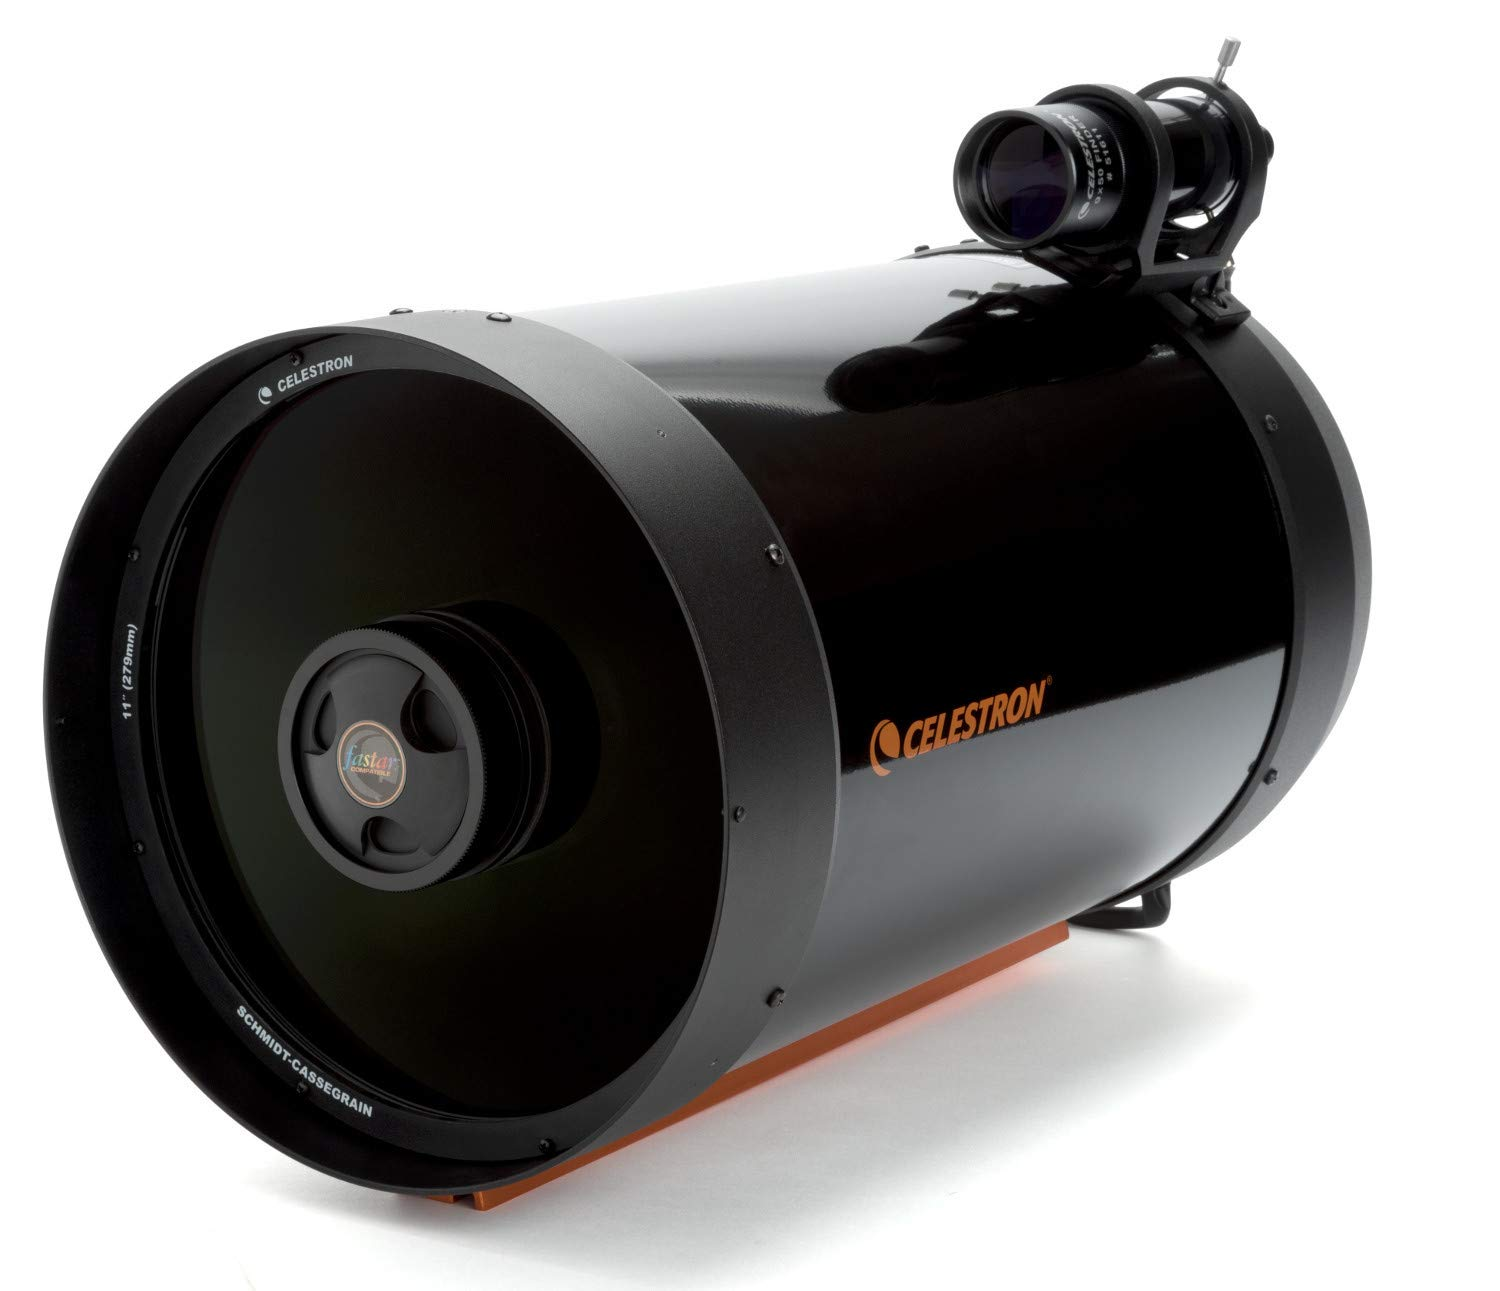 Celestron StarBright 91067 XLT 279mm Catadioptric Telescope by Celestron